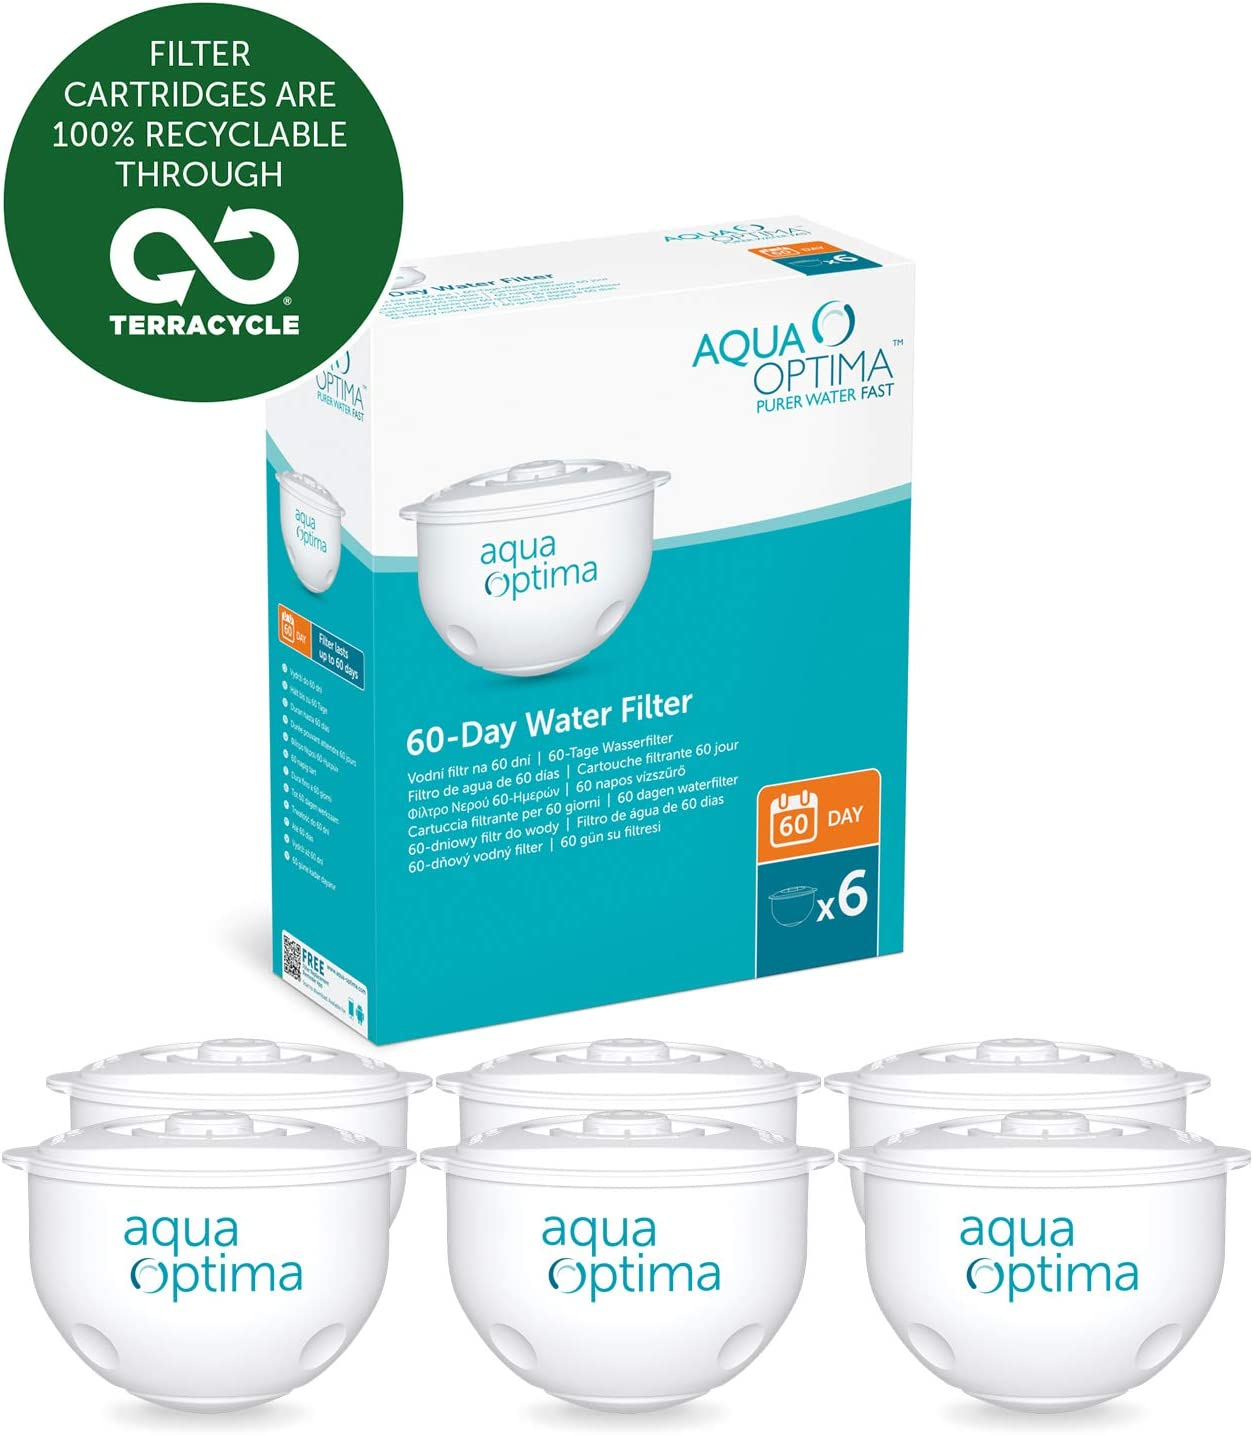 Aqua Optima Original 12 month pack, 6 x 60 day water filters - SWP336